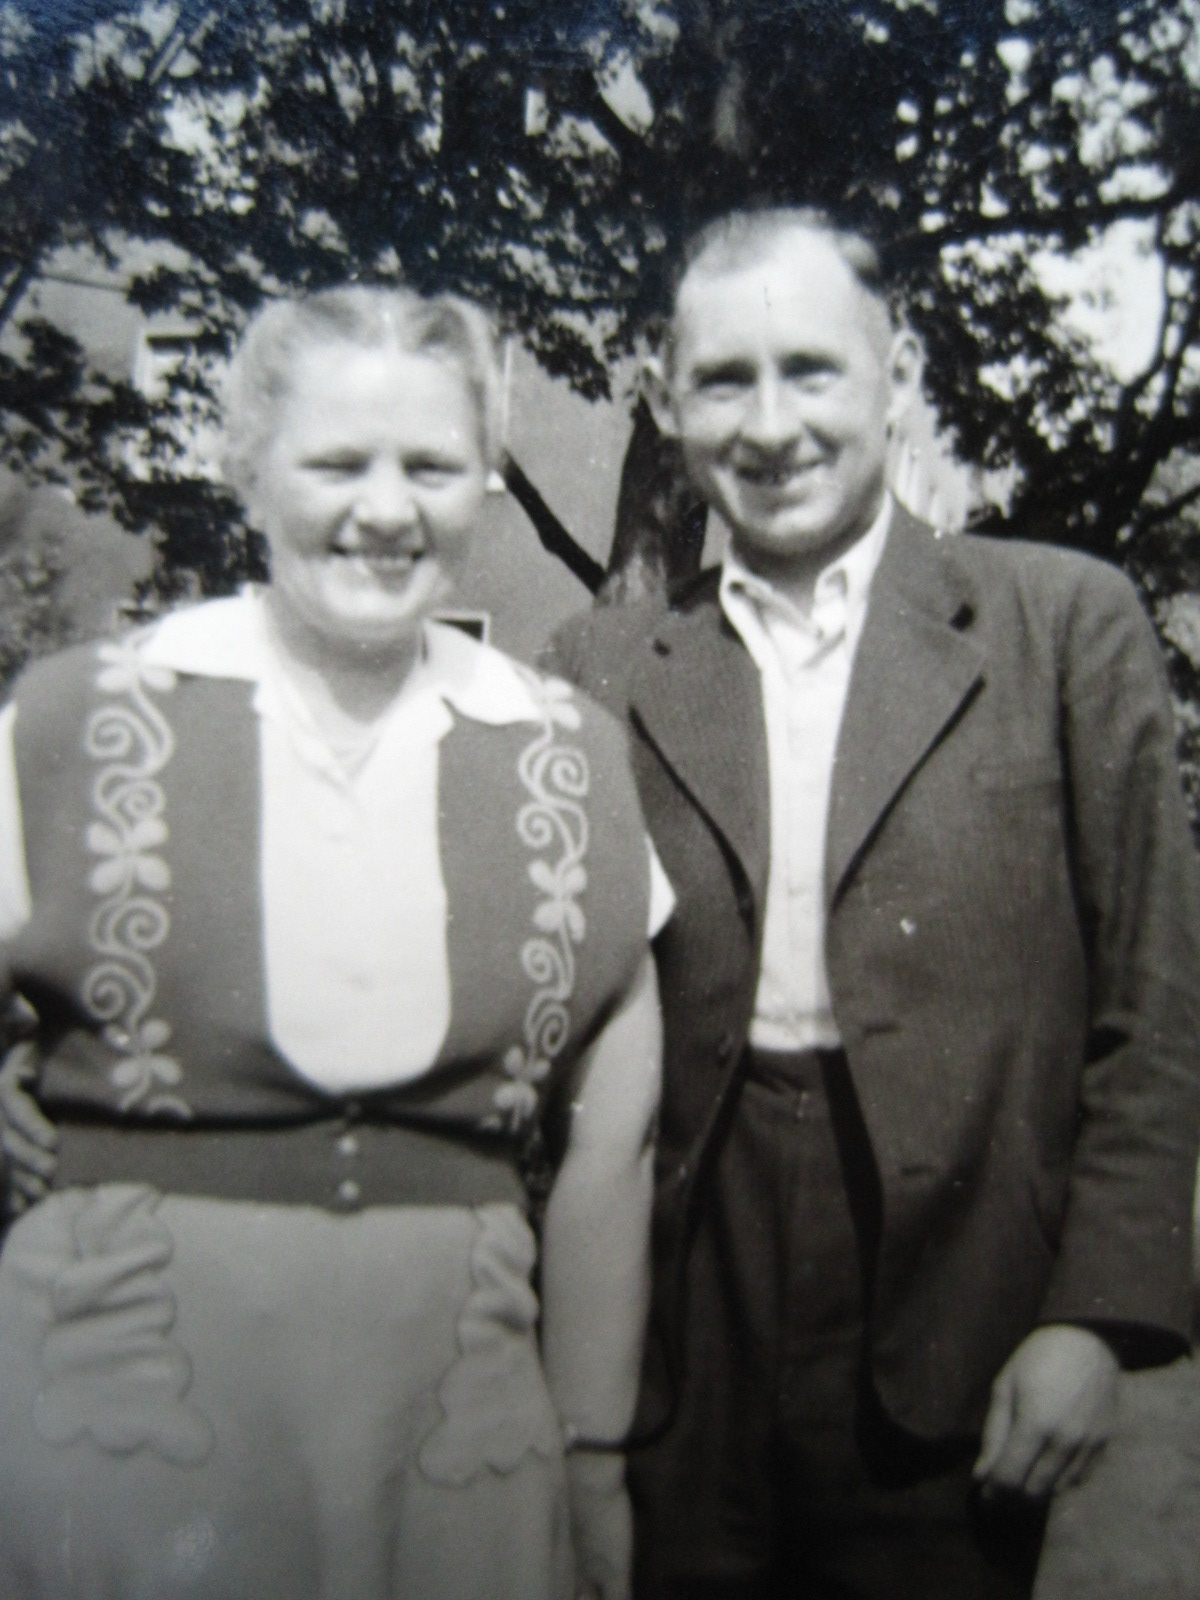 Opa and Oma around 1956 I